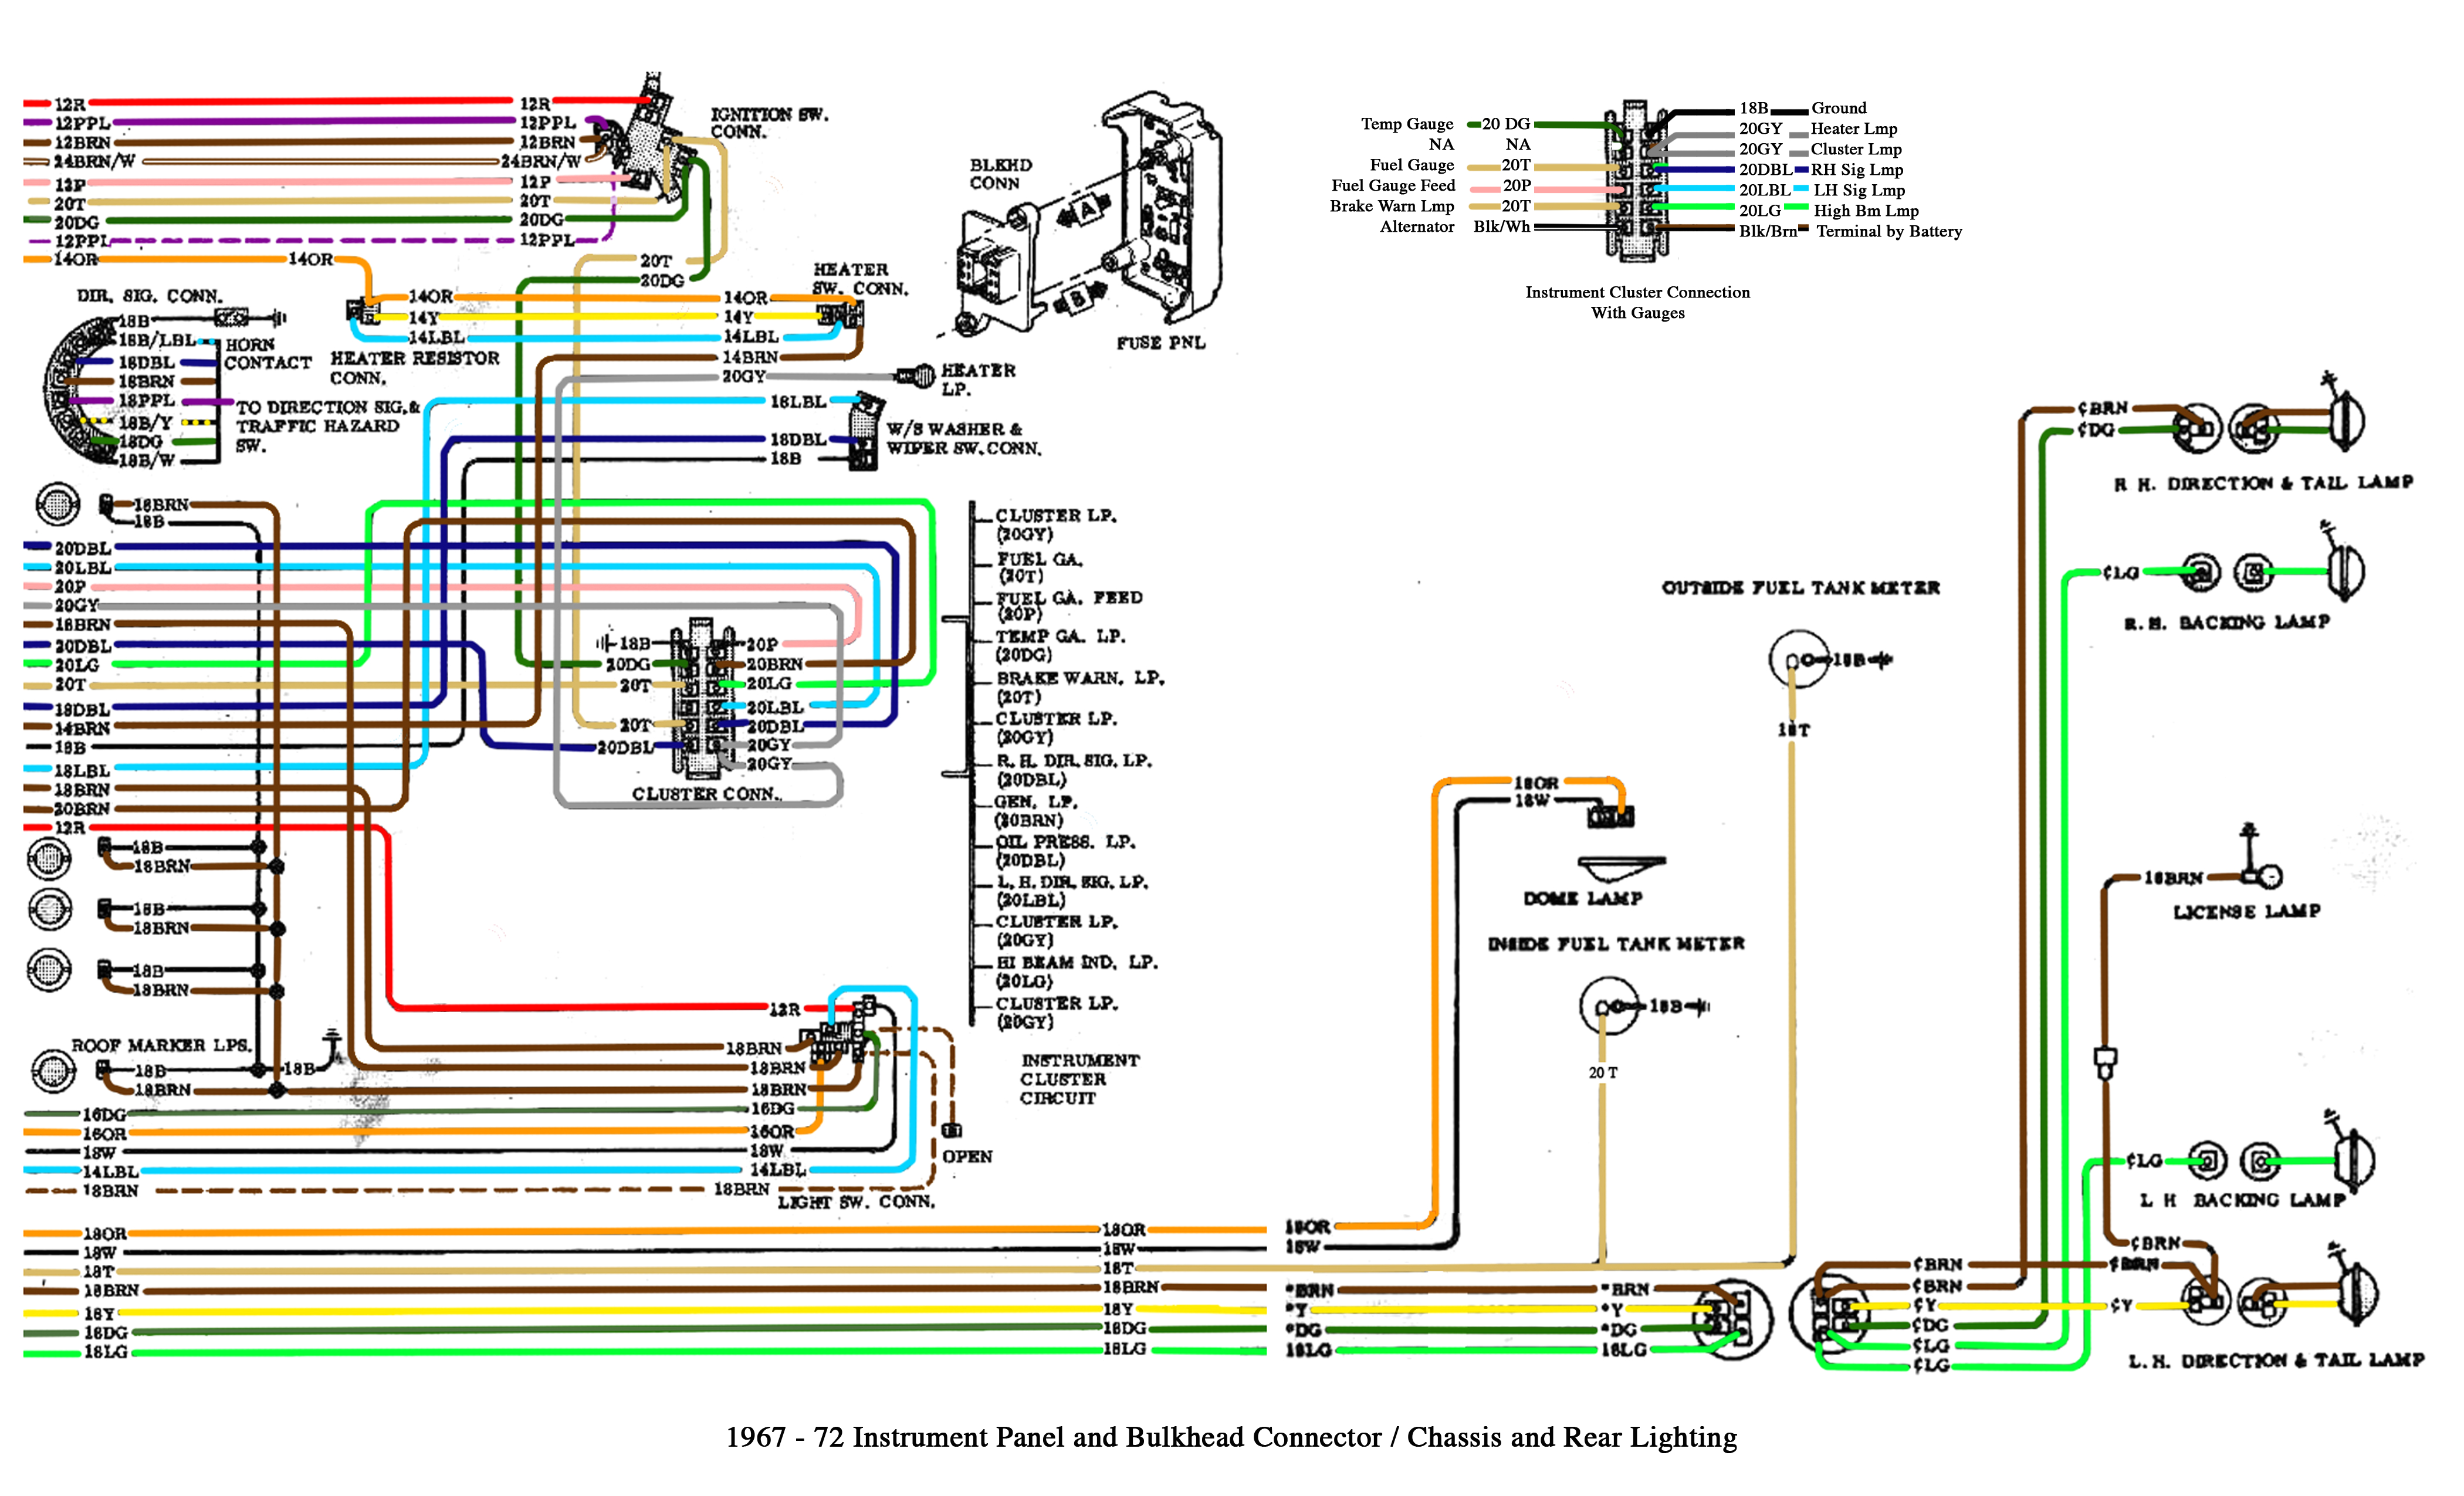 68 gmc wiring harness diagram another blog about wiring diagram 68 gmc wiring harness diagram